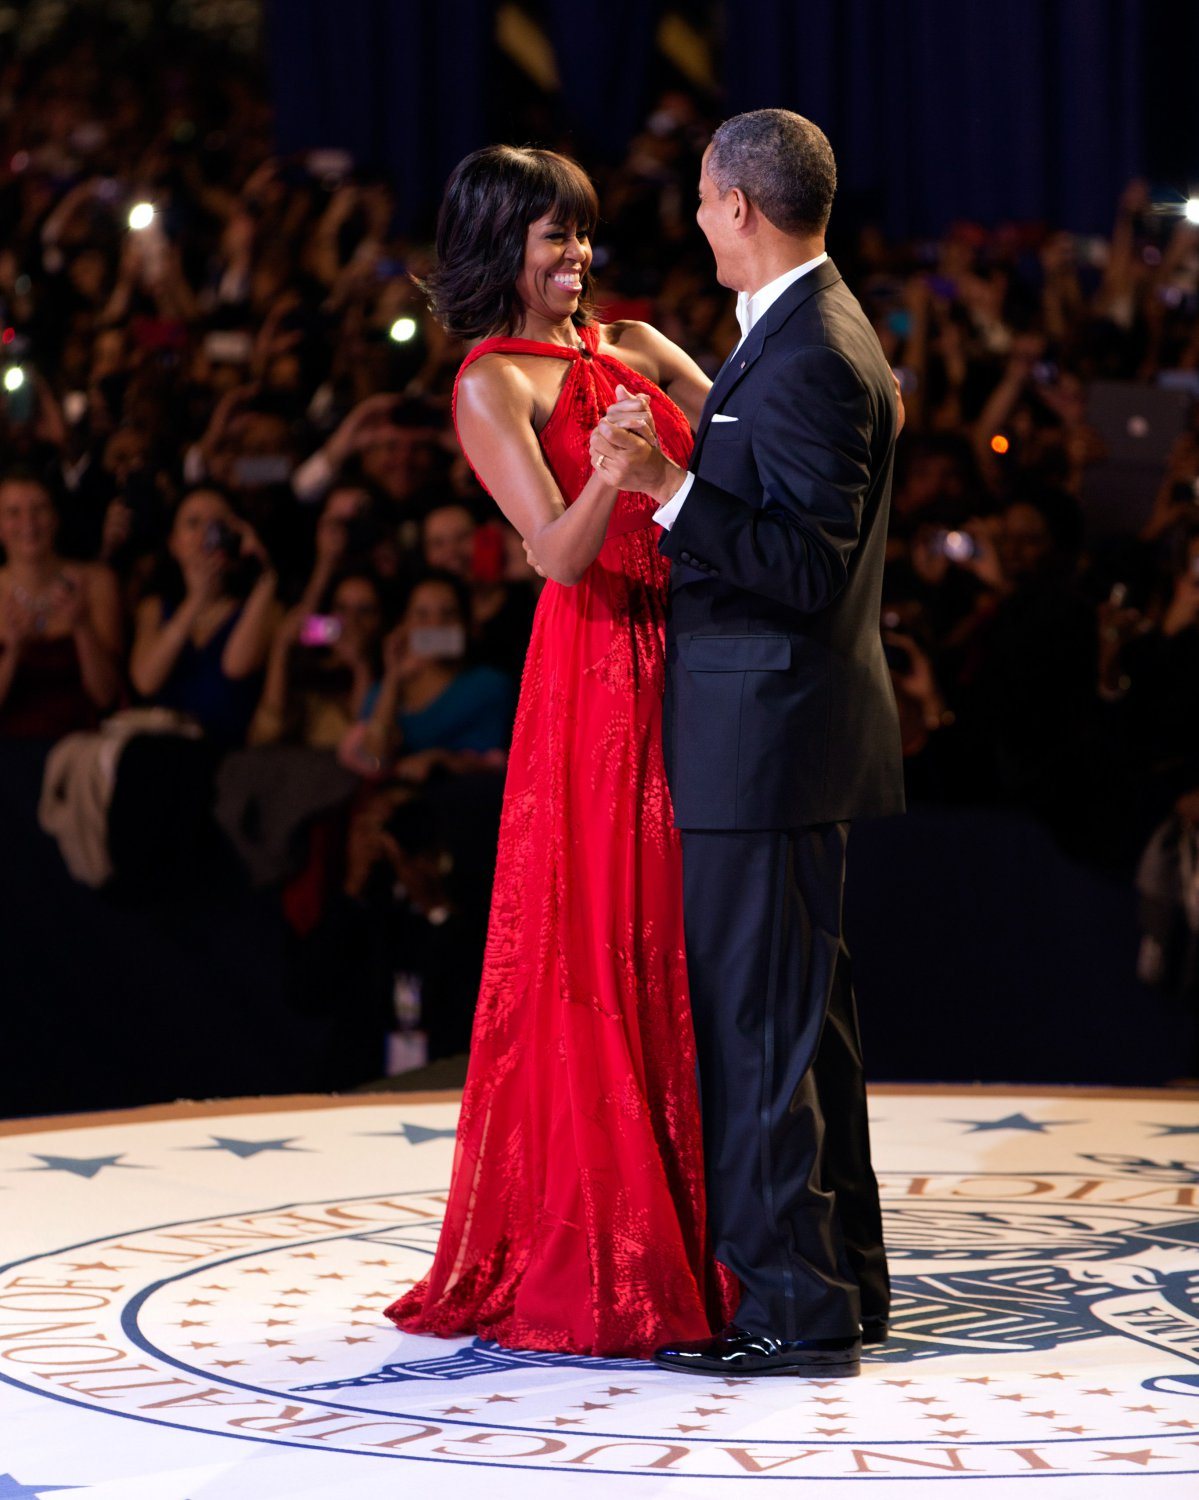 PRESIDENT BARACK OBAMA DANCES WITH FIRST LADY MICHELLE OBAMA 8X10 PHOTO (ZY-208)